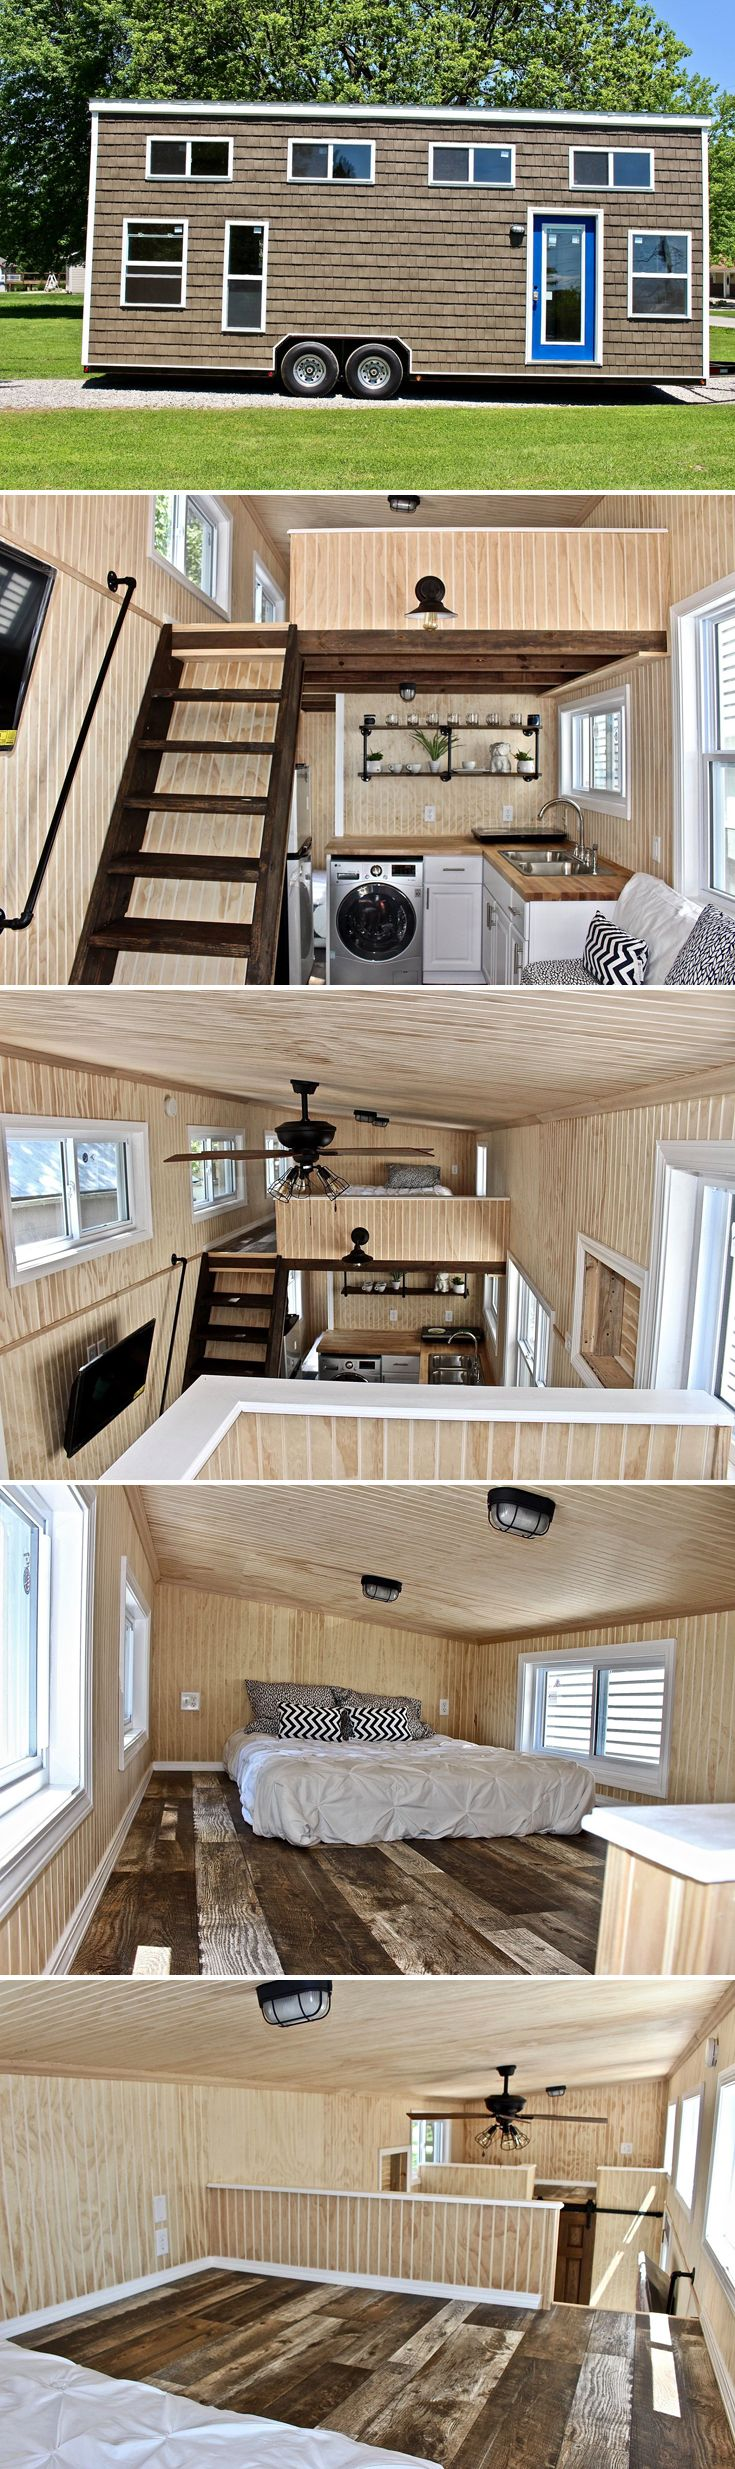 The 28' Chalet Shack was built by Mini Mansions and includes three sleeping areas, including a main floor bedroom, a king size loft, and a twin loft.